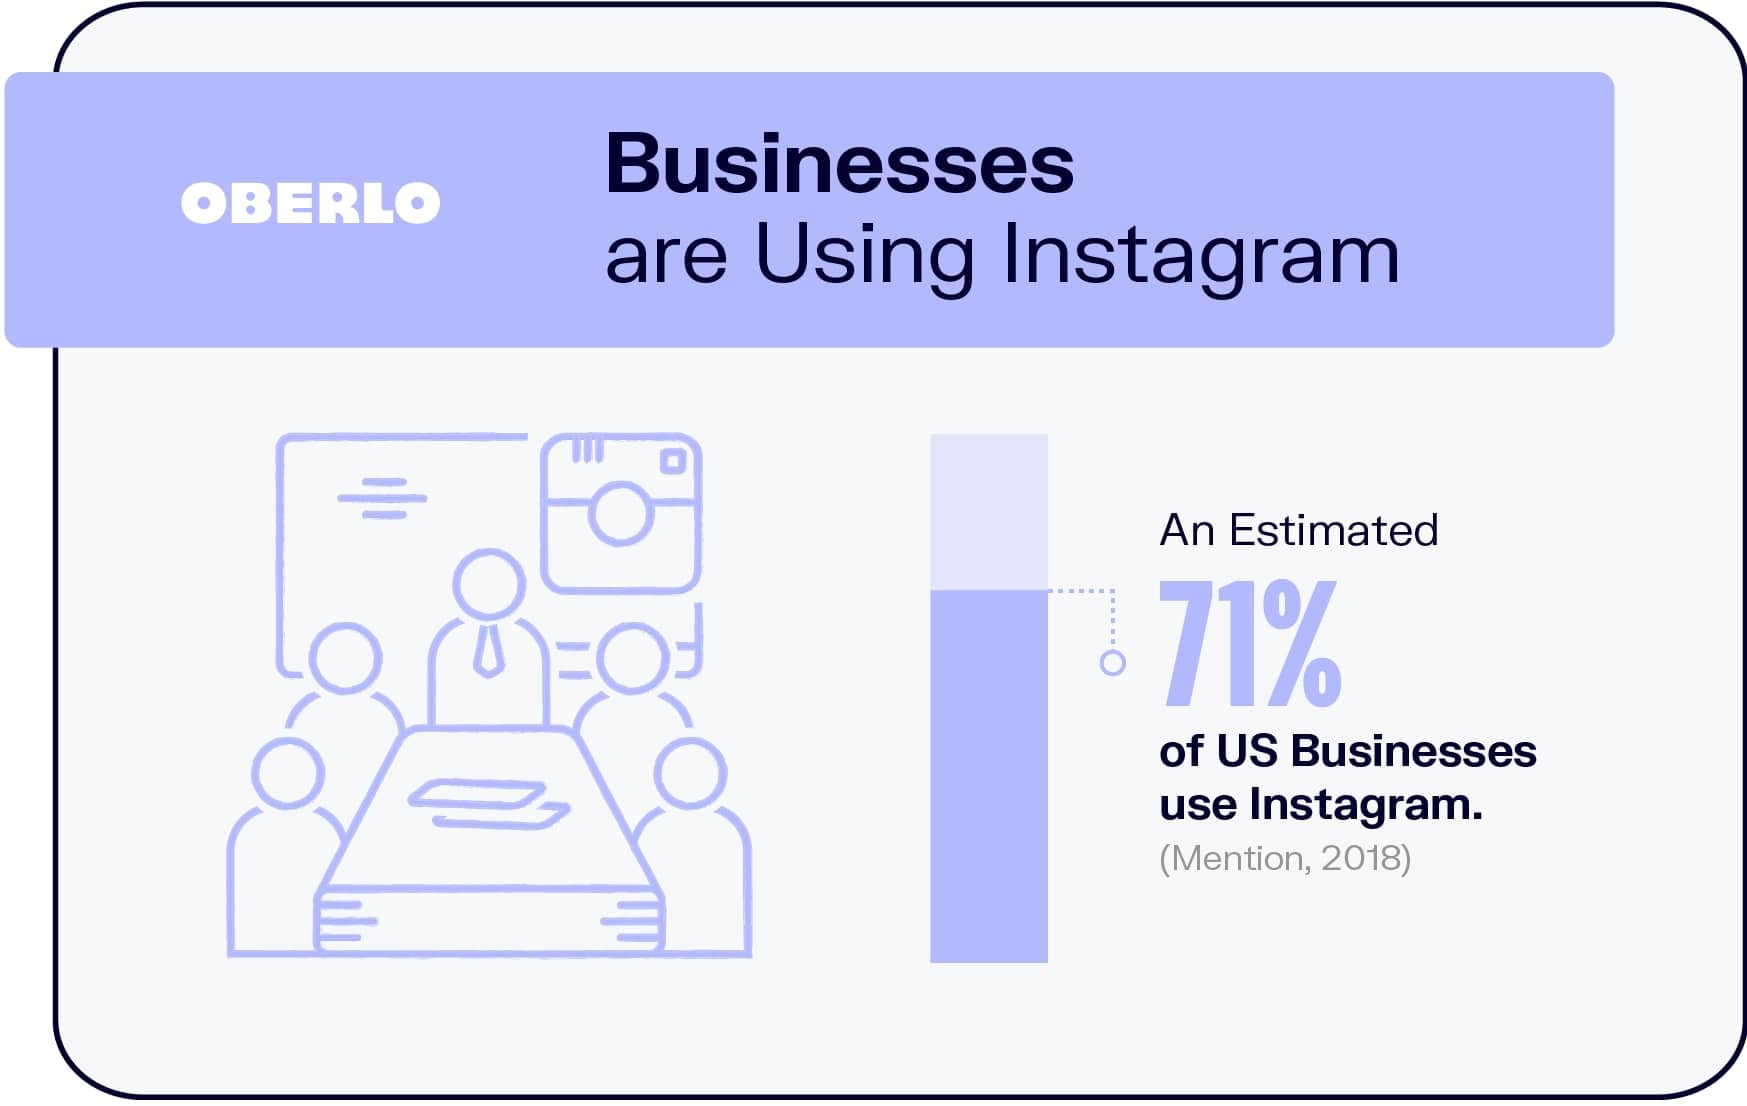 Businesses are Using Instagram